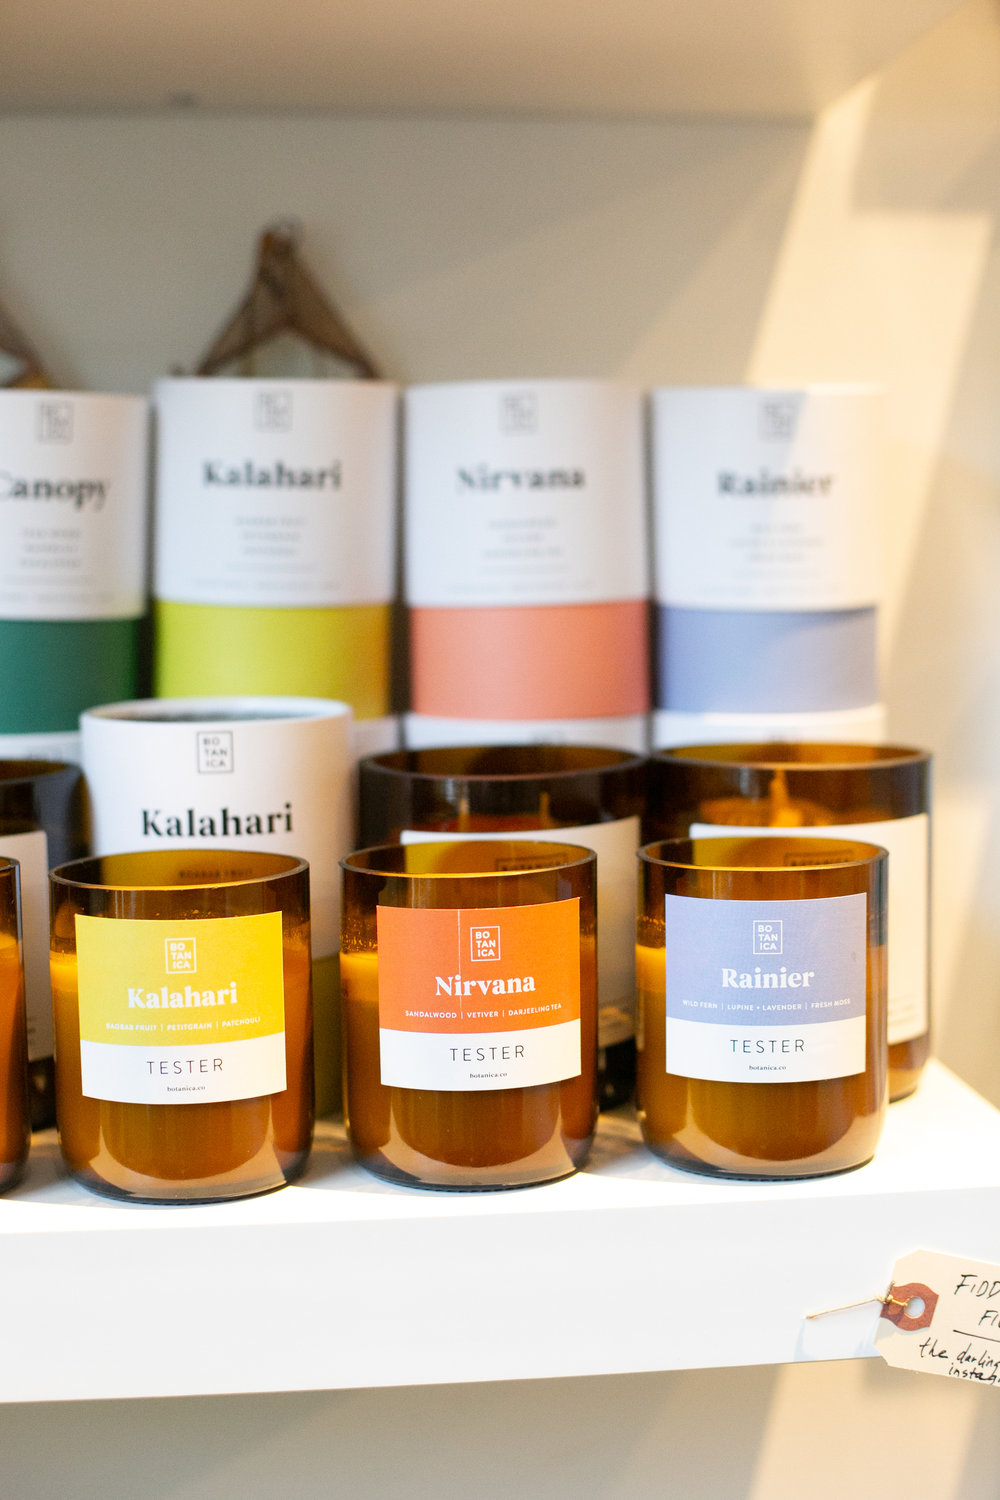 We like to pick a candle that matches a cause we know the party host cares about. For example, the Kalahari scent goes to wildlife conservation in Africa and would be great for an animal or nature lover.